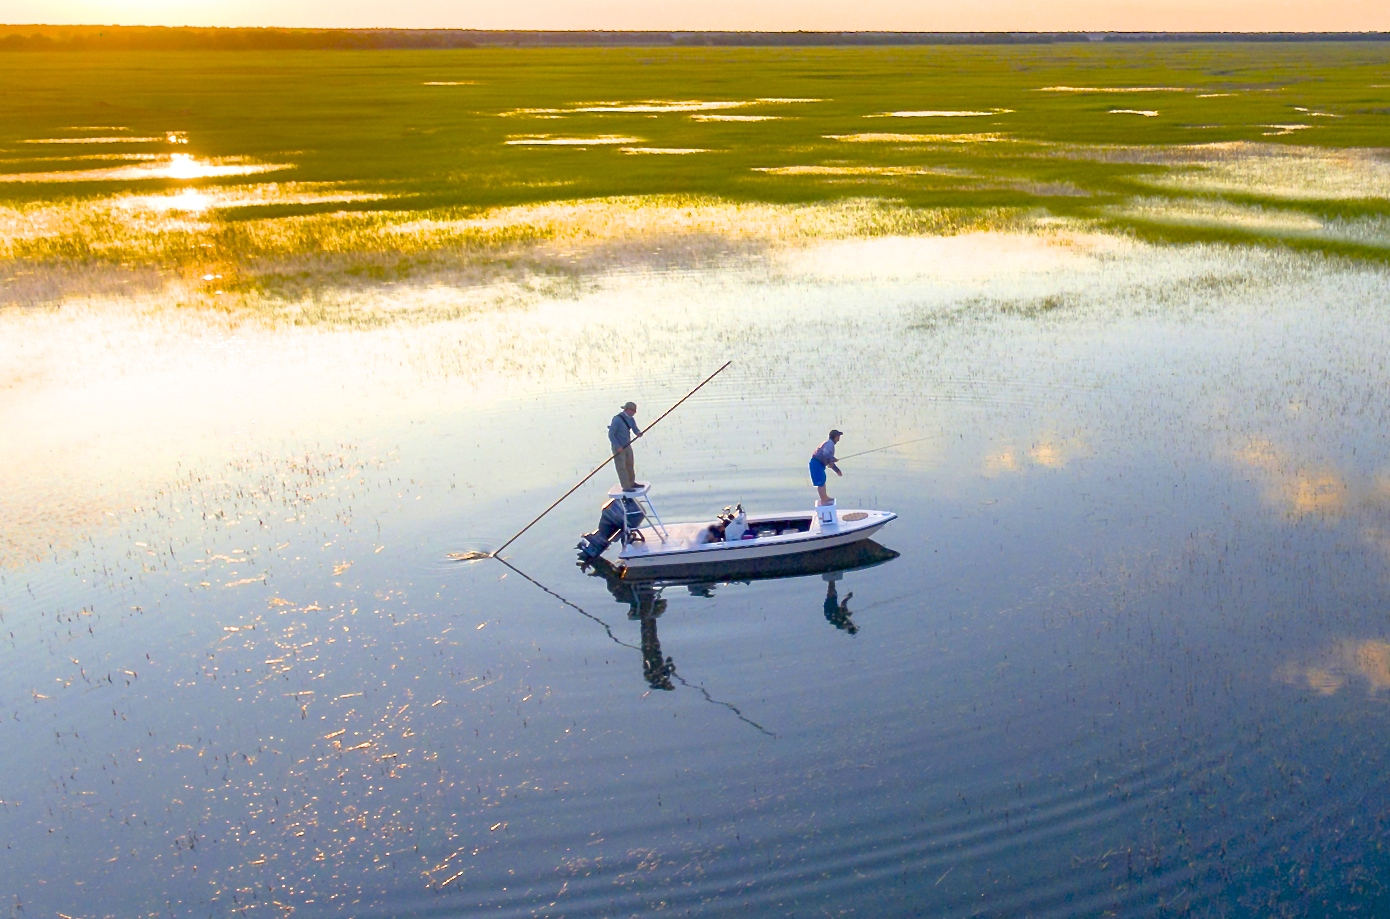 Fly fishing winyah bay living water guide services for South carolina fishing